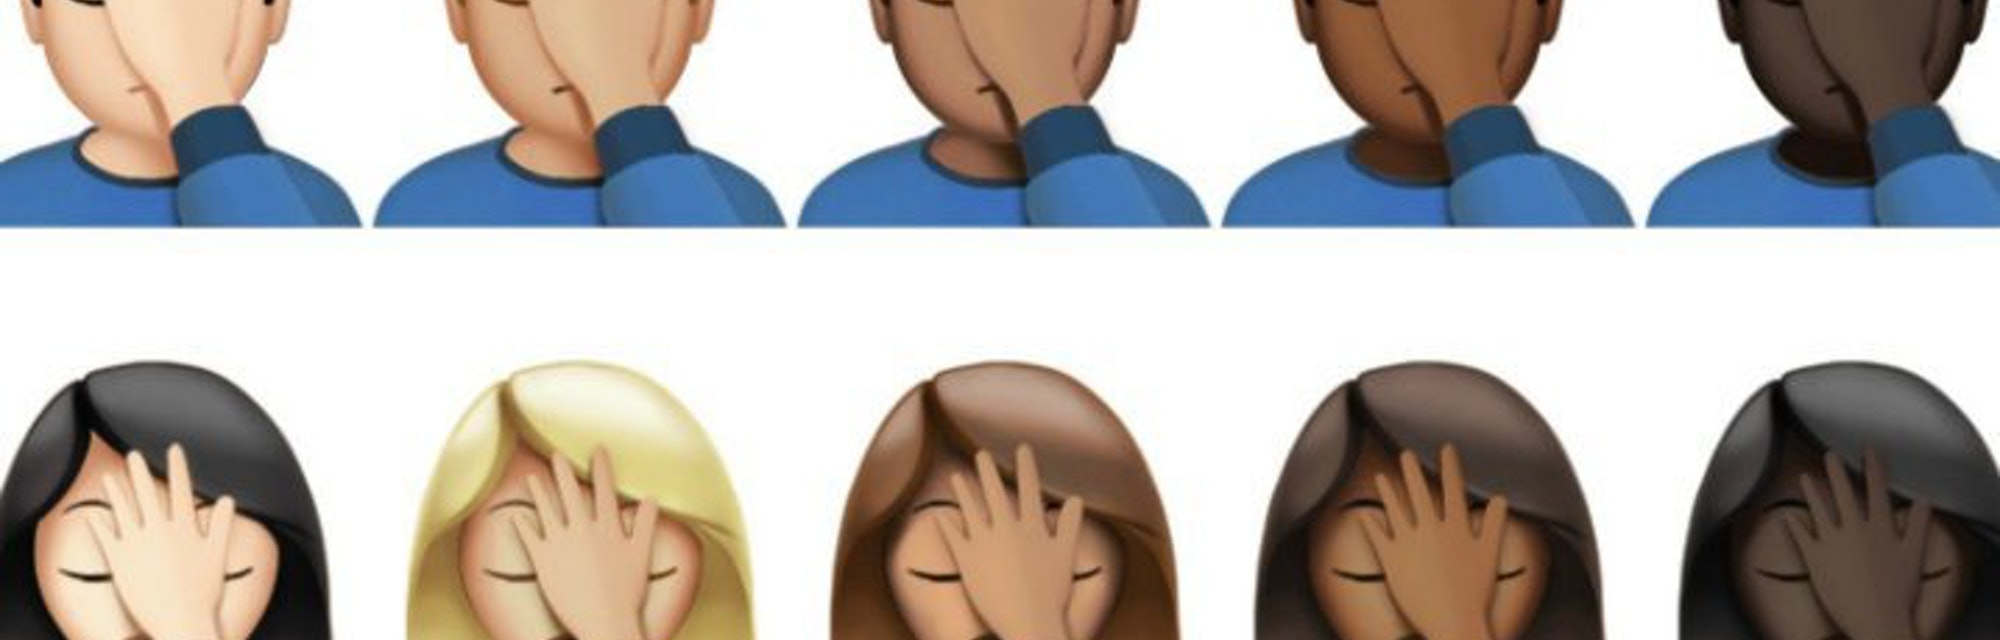 The Facepalm The Newest Emoji Dates Back Thousands Of Years